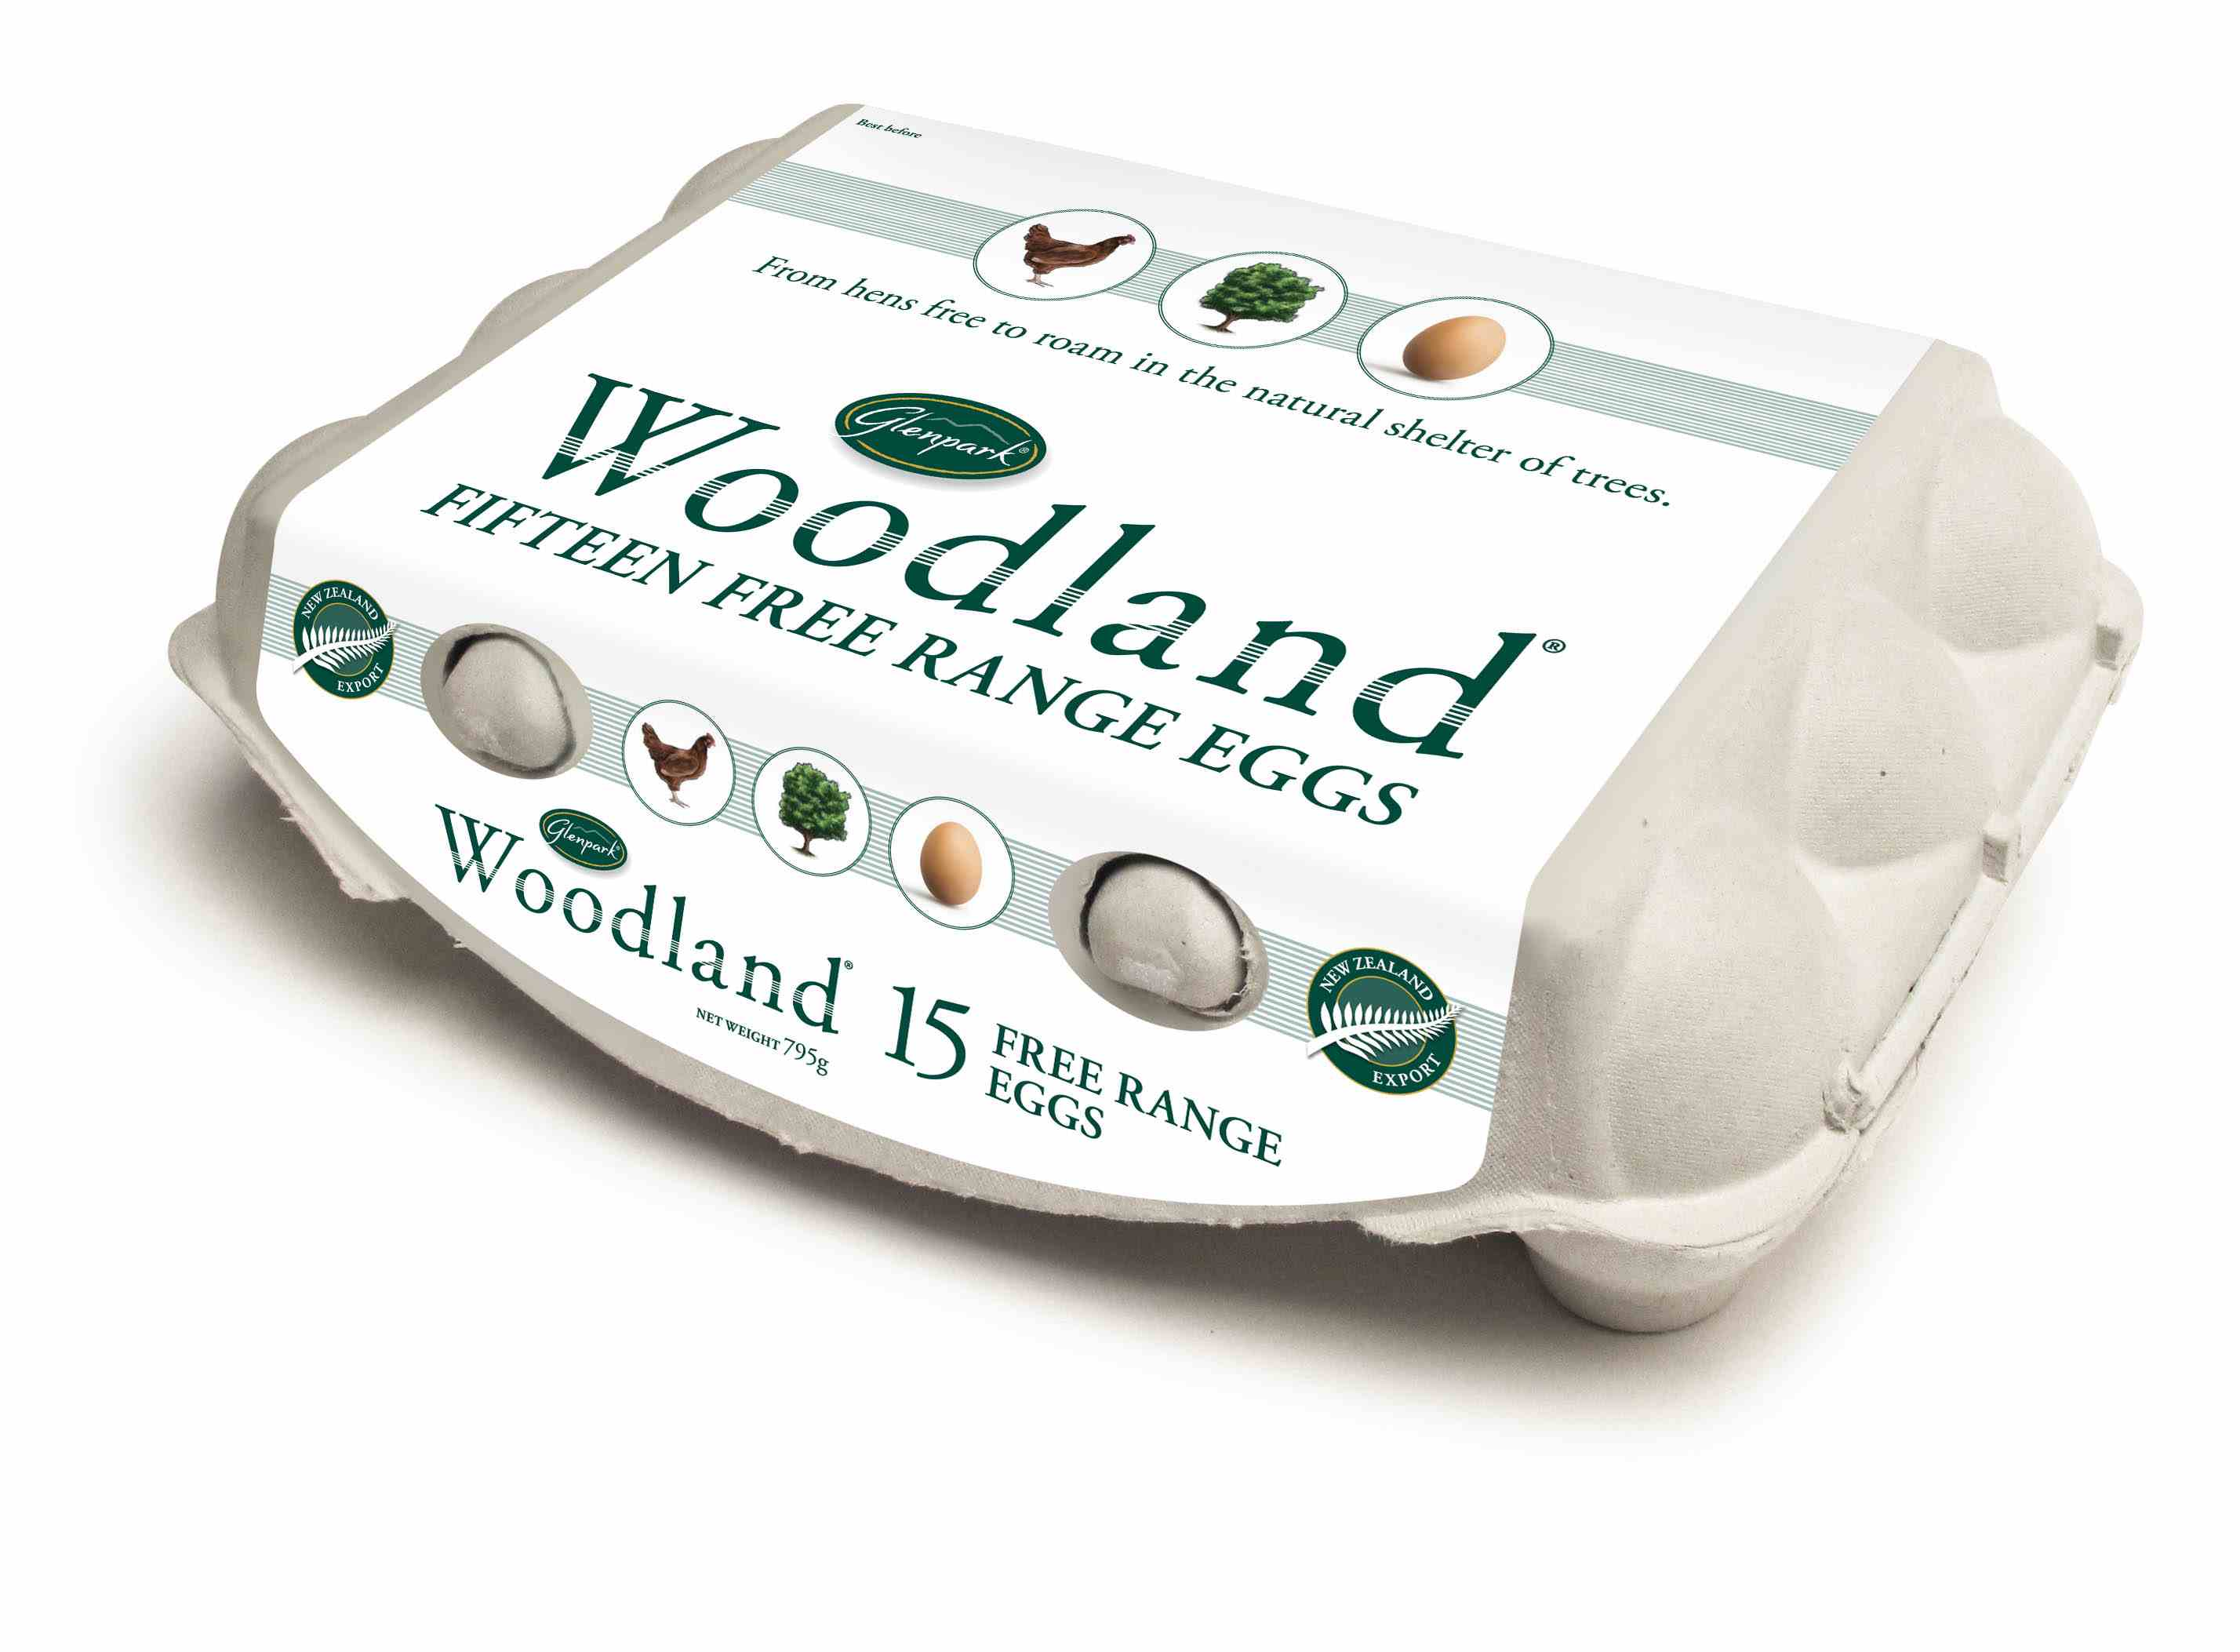 New website and recipes from woodland free range eggs fresh ideas